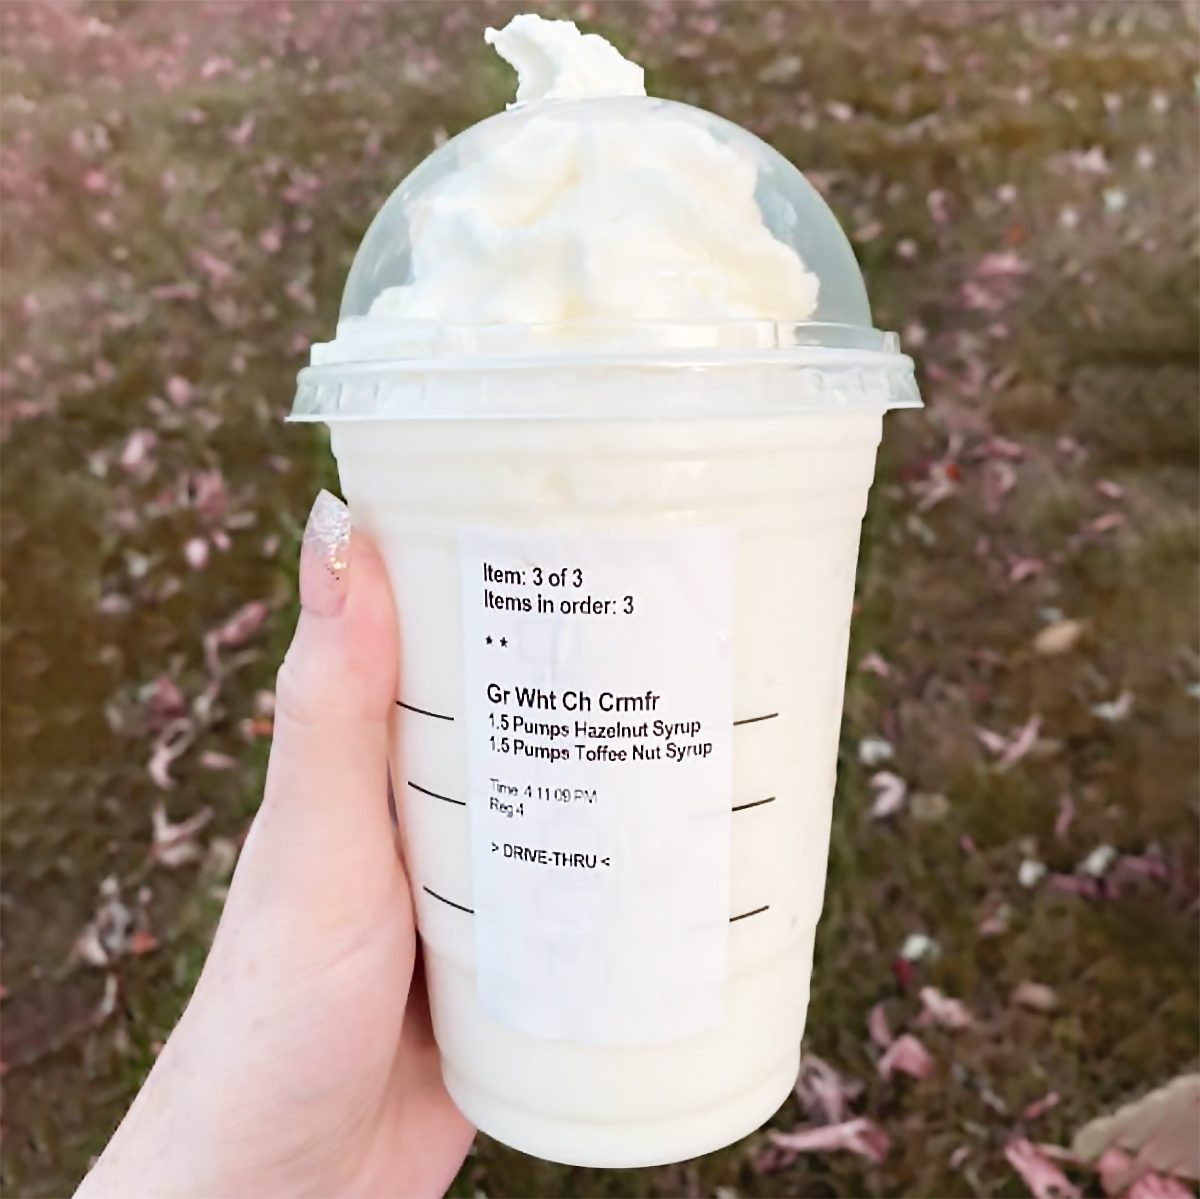 Snowball Frappuccino from Starbucks